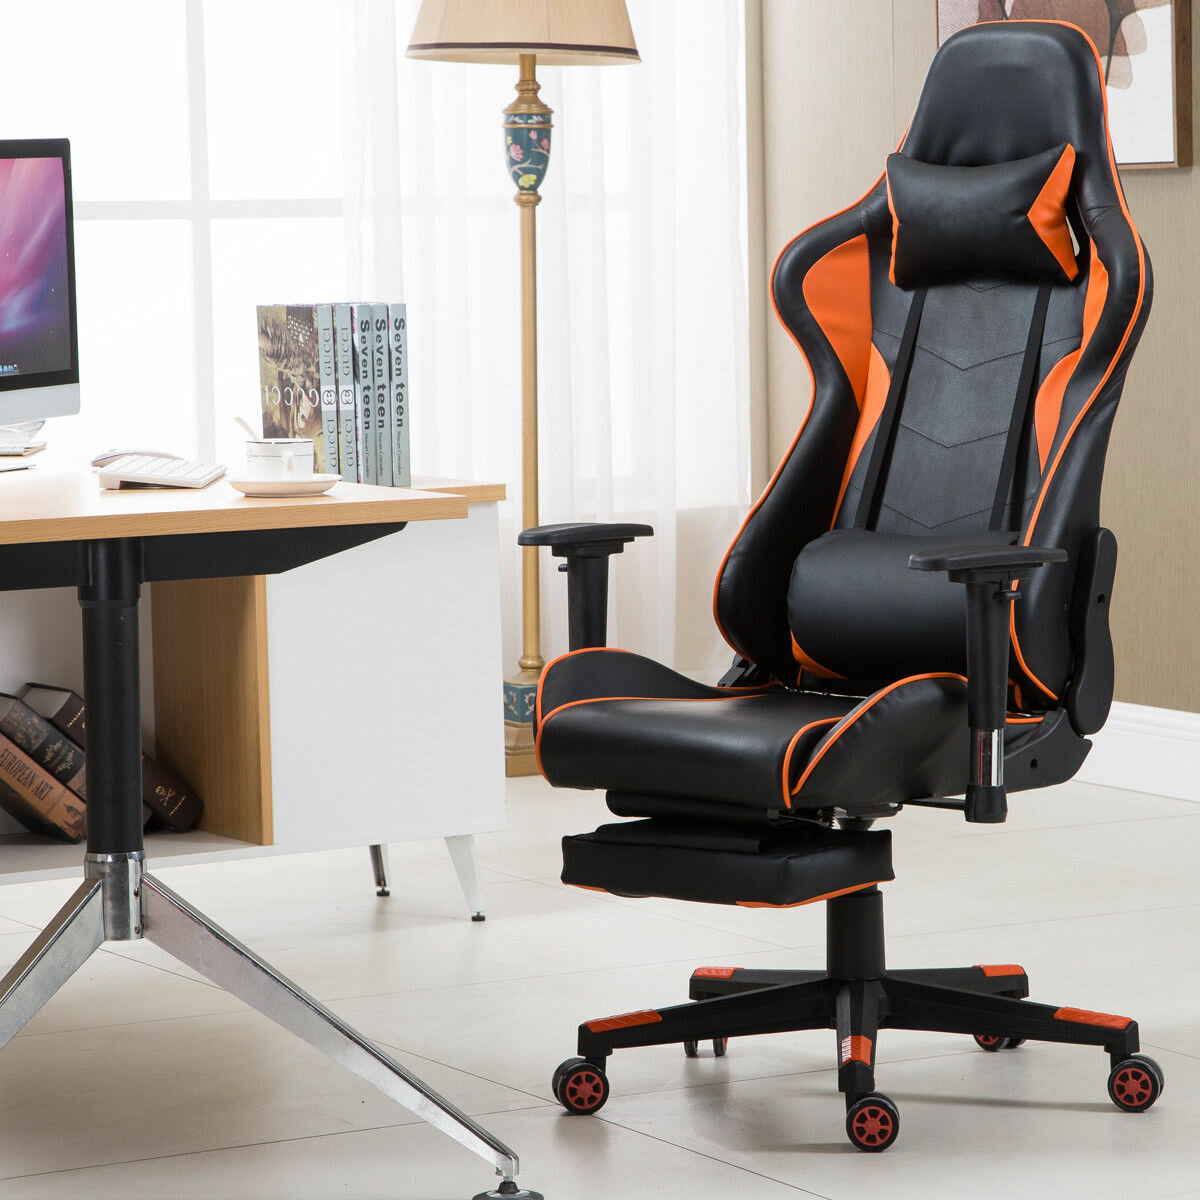 Excellent High Back Recliner Racing Gaming Chair With Lumbar Support And Footrest Bralicious Painted Fabric Chair Ideas Braliciousco